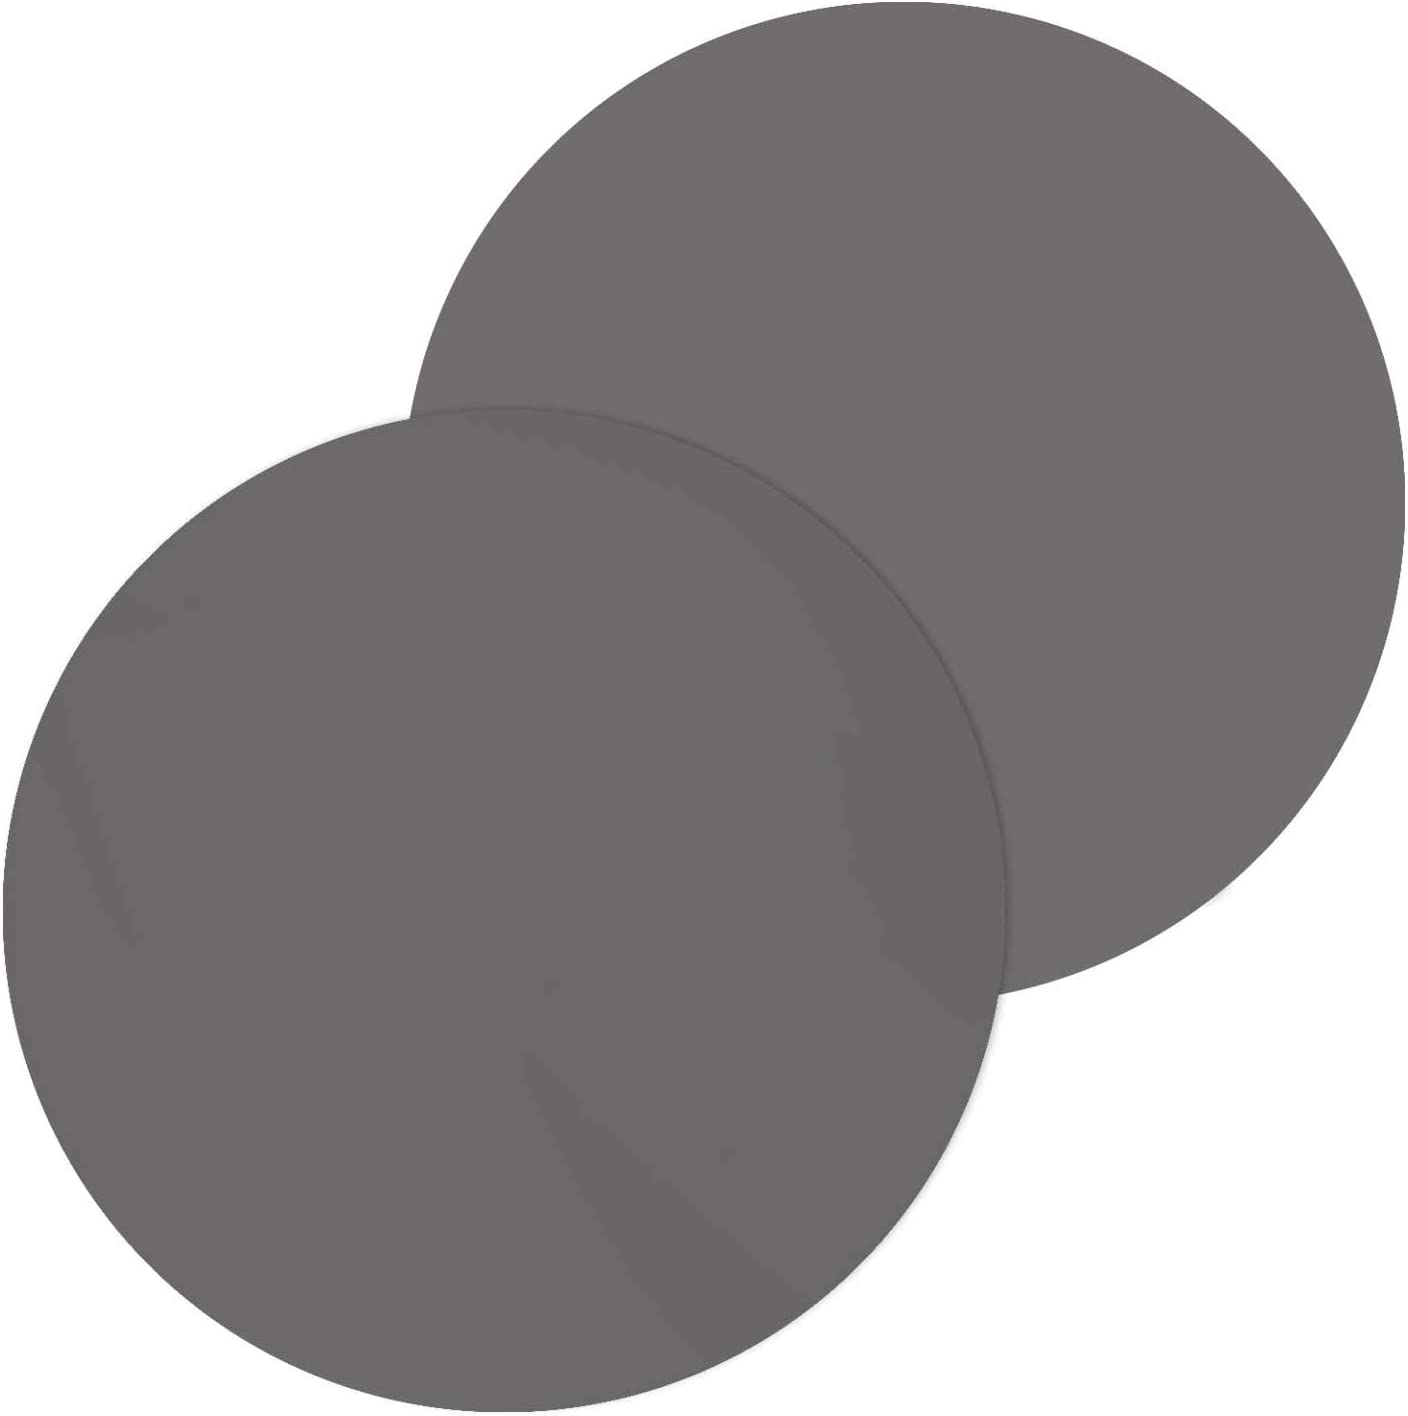 Silicone Microwave Mat - Reusable Non Stick Turntable Mat for Kitchen, Multi-Purpose Heat Resistant Oven Mat, Dishwasher Safe, 12 inch (2 Pack, Grey)